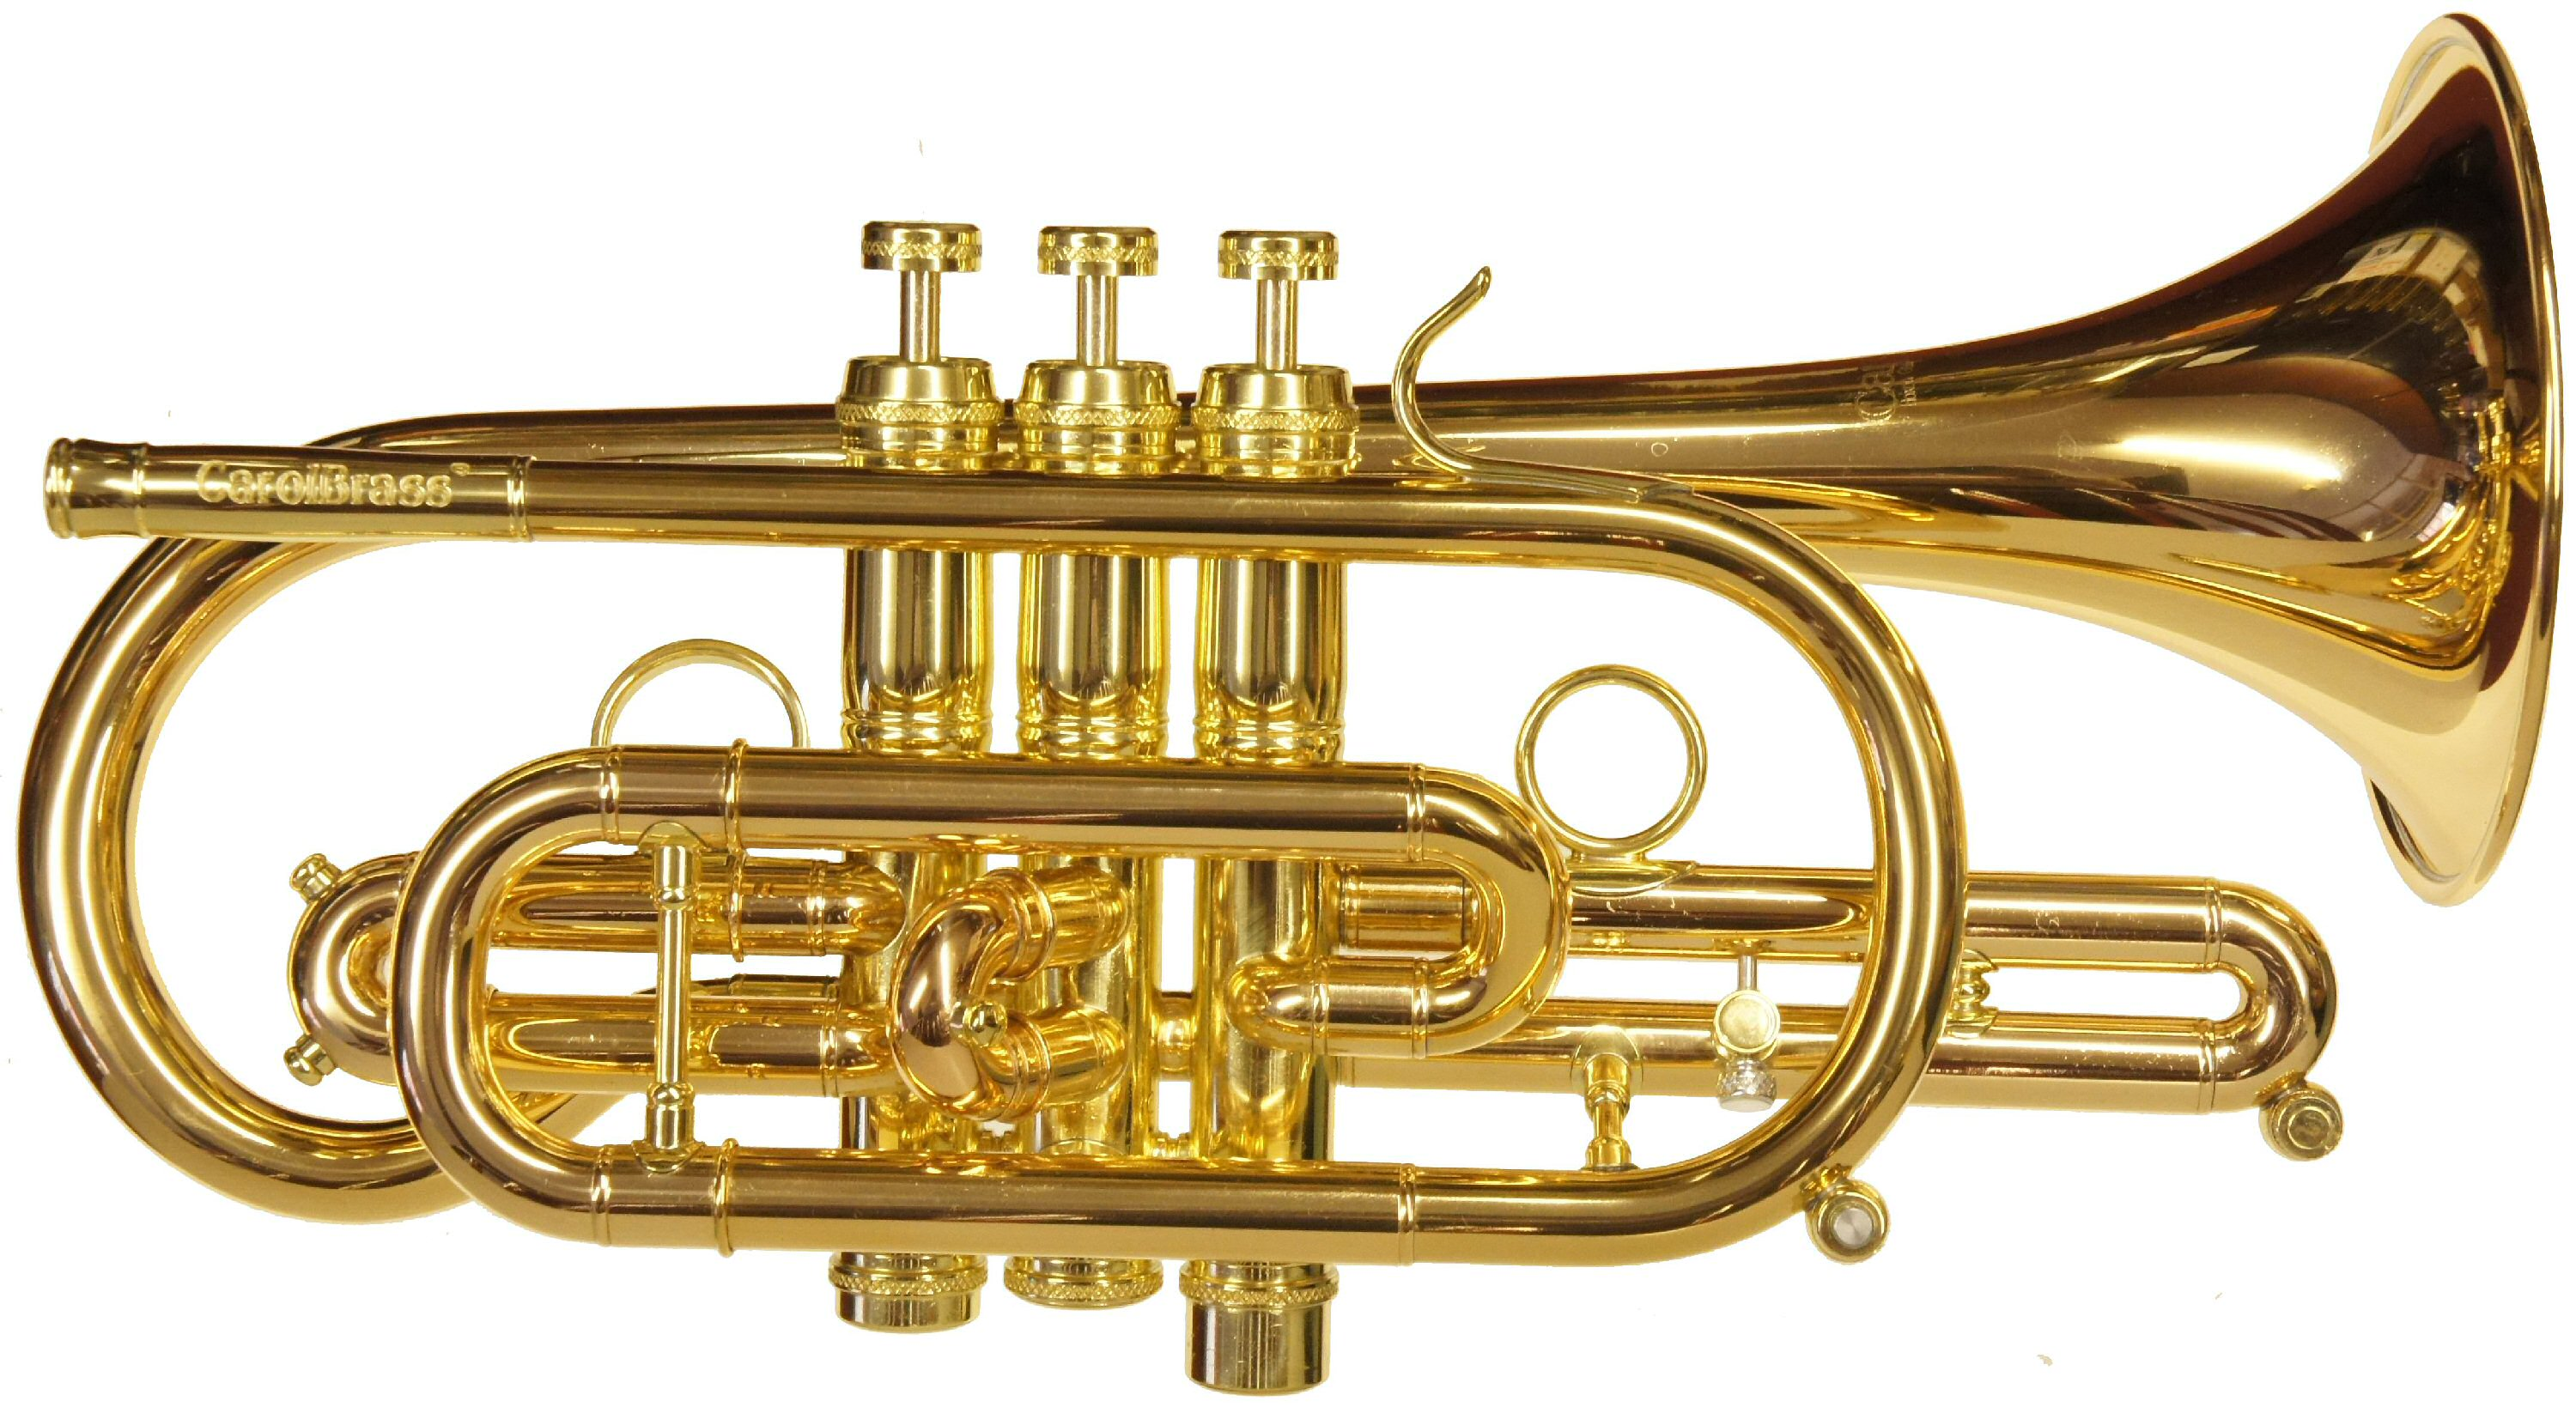 Second Hand Carol Brass 8880 Cornet